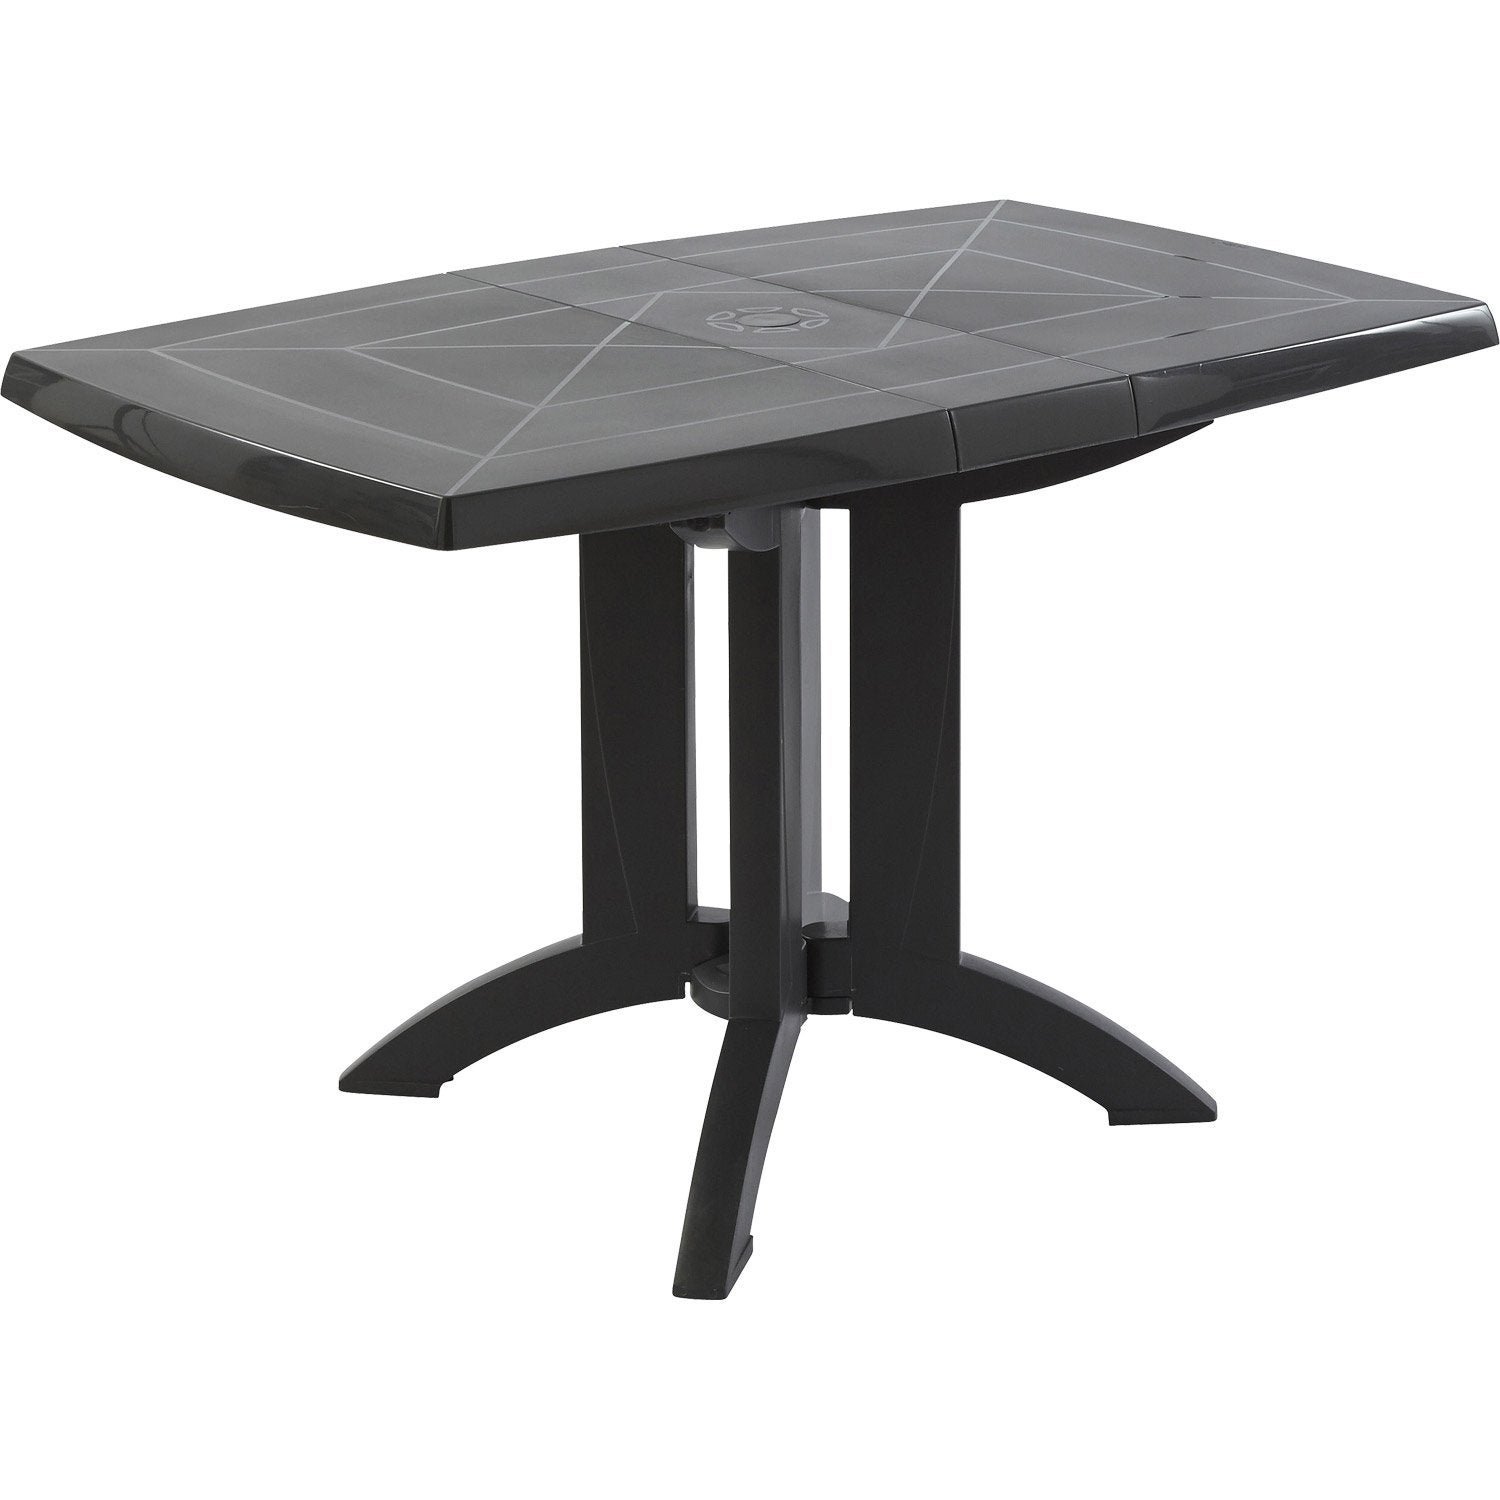 Table de jardin grosfillex v ga rectangulaire anthracite 4 personnes leroy merlin - Table jardin grofilex besancon ...